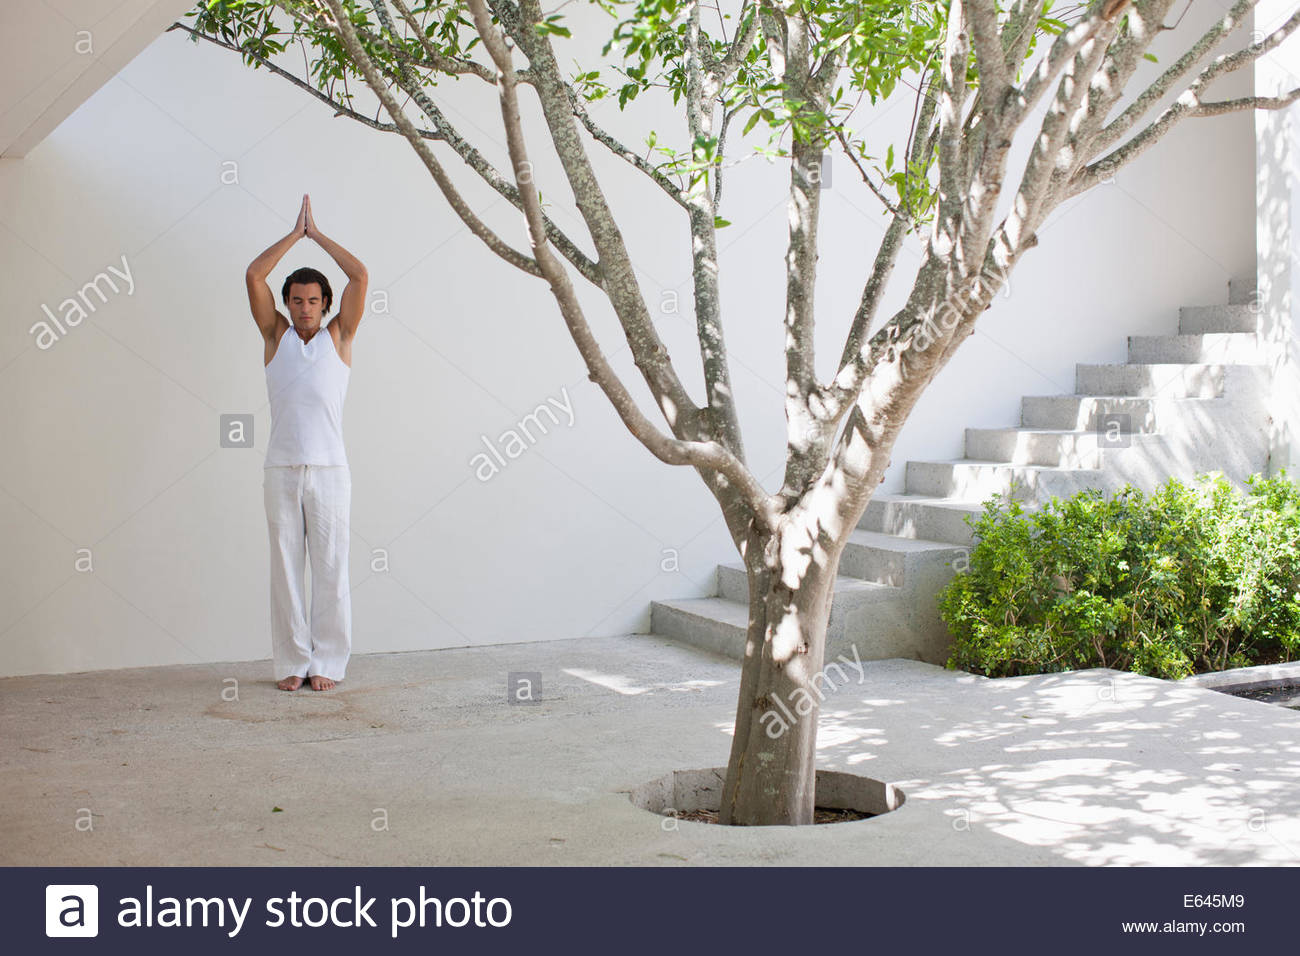 Man standing with arms outstretched in courtyard - Stock Image